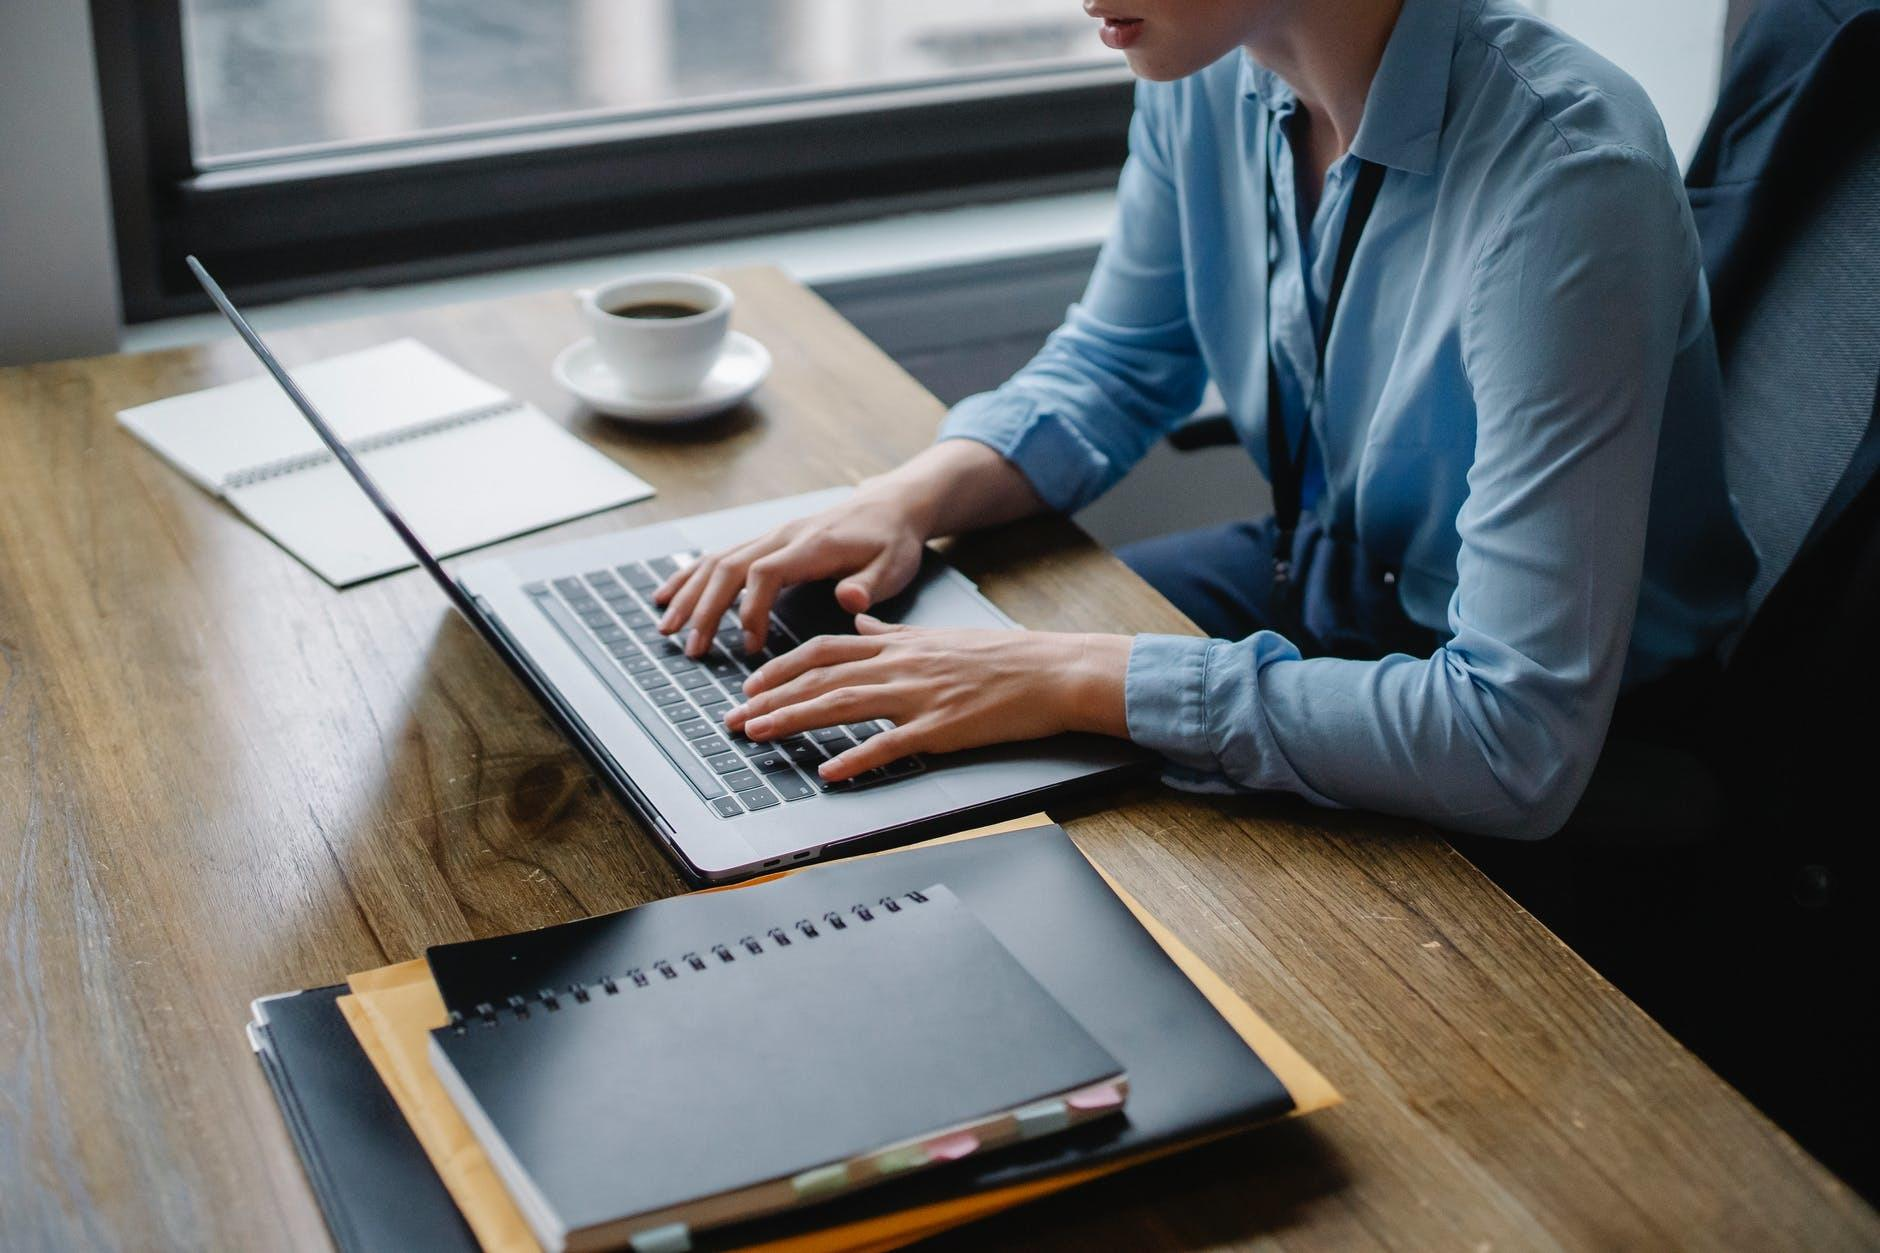 person in blue long sleeve shirt using macbook pro on brown wooden table